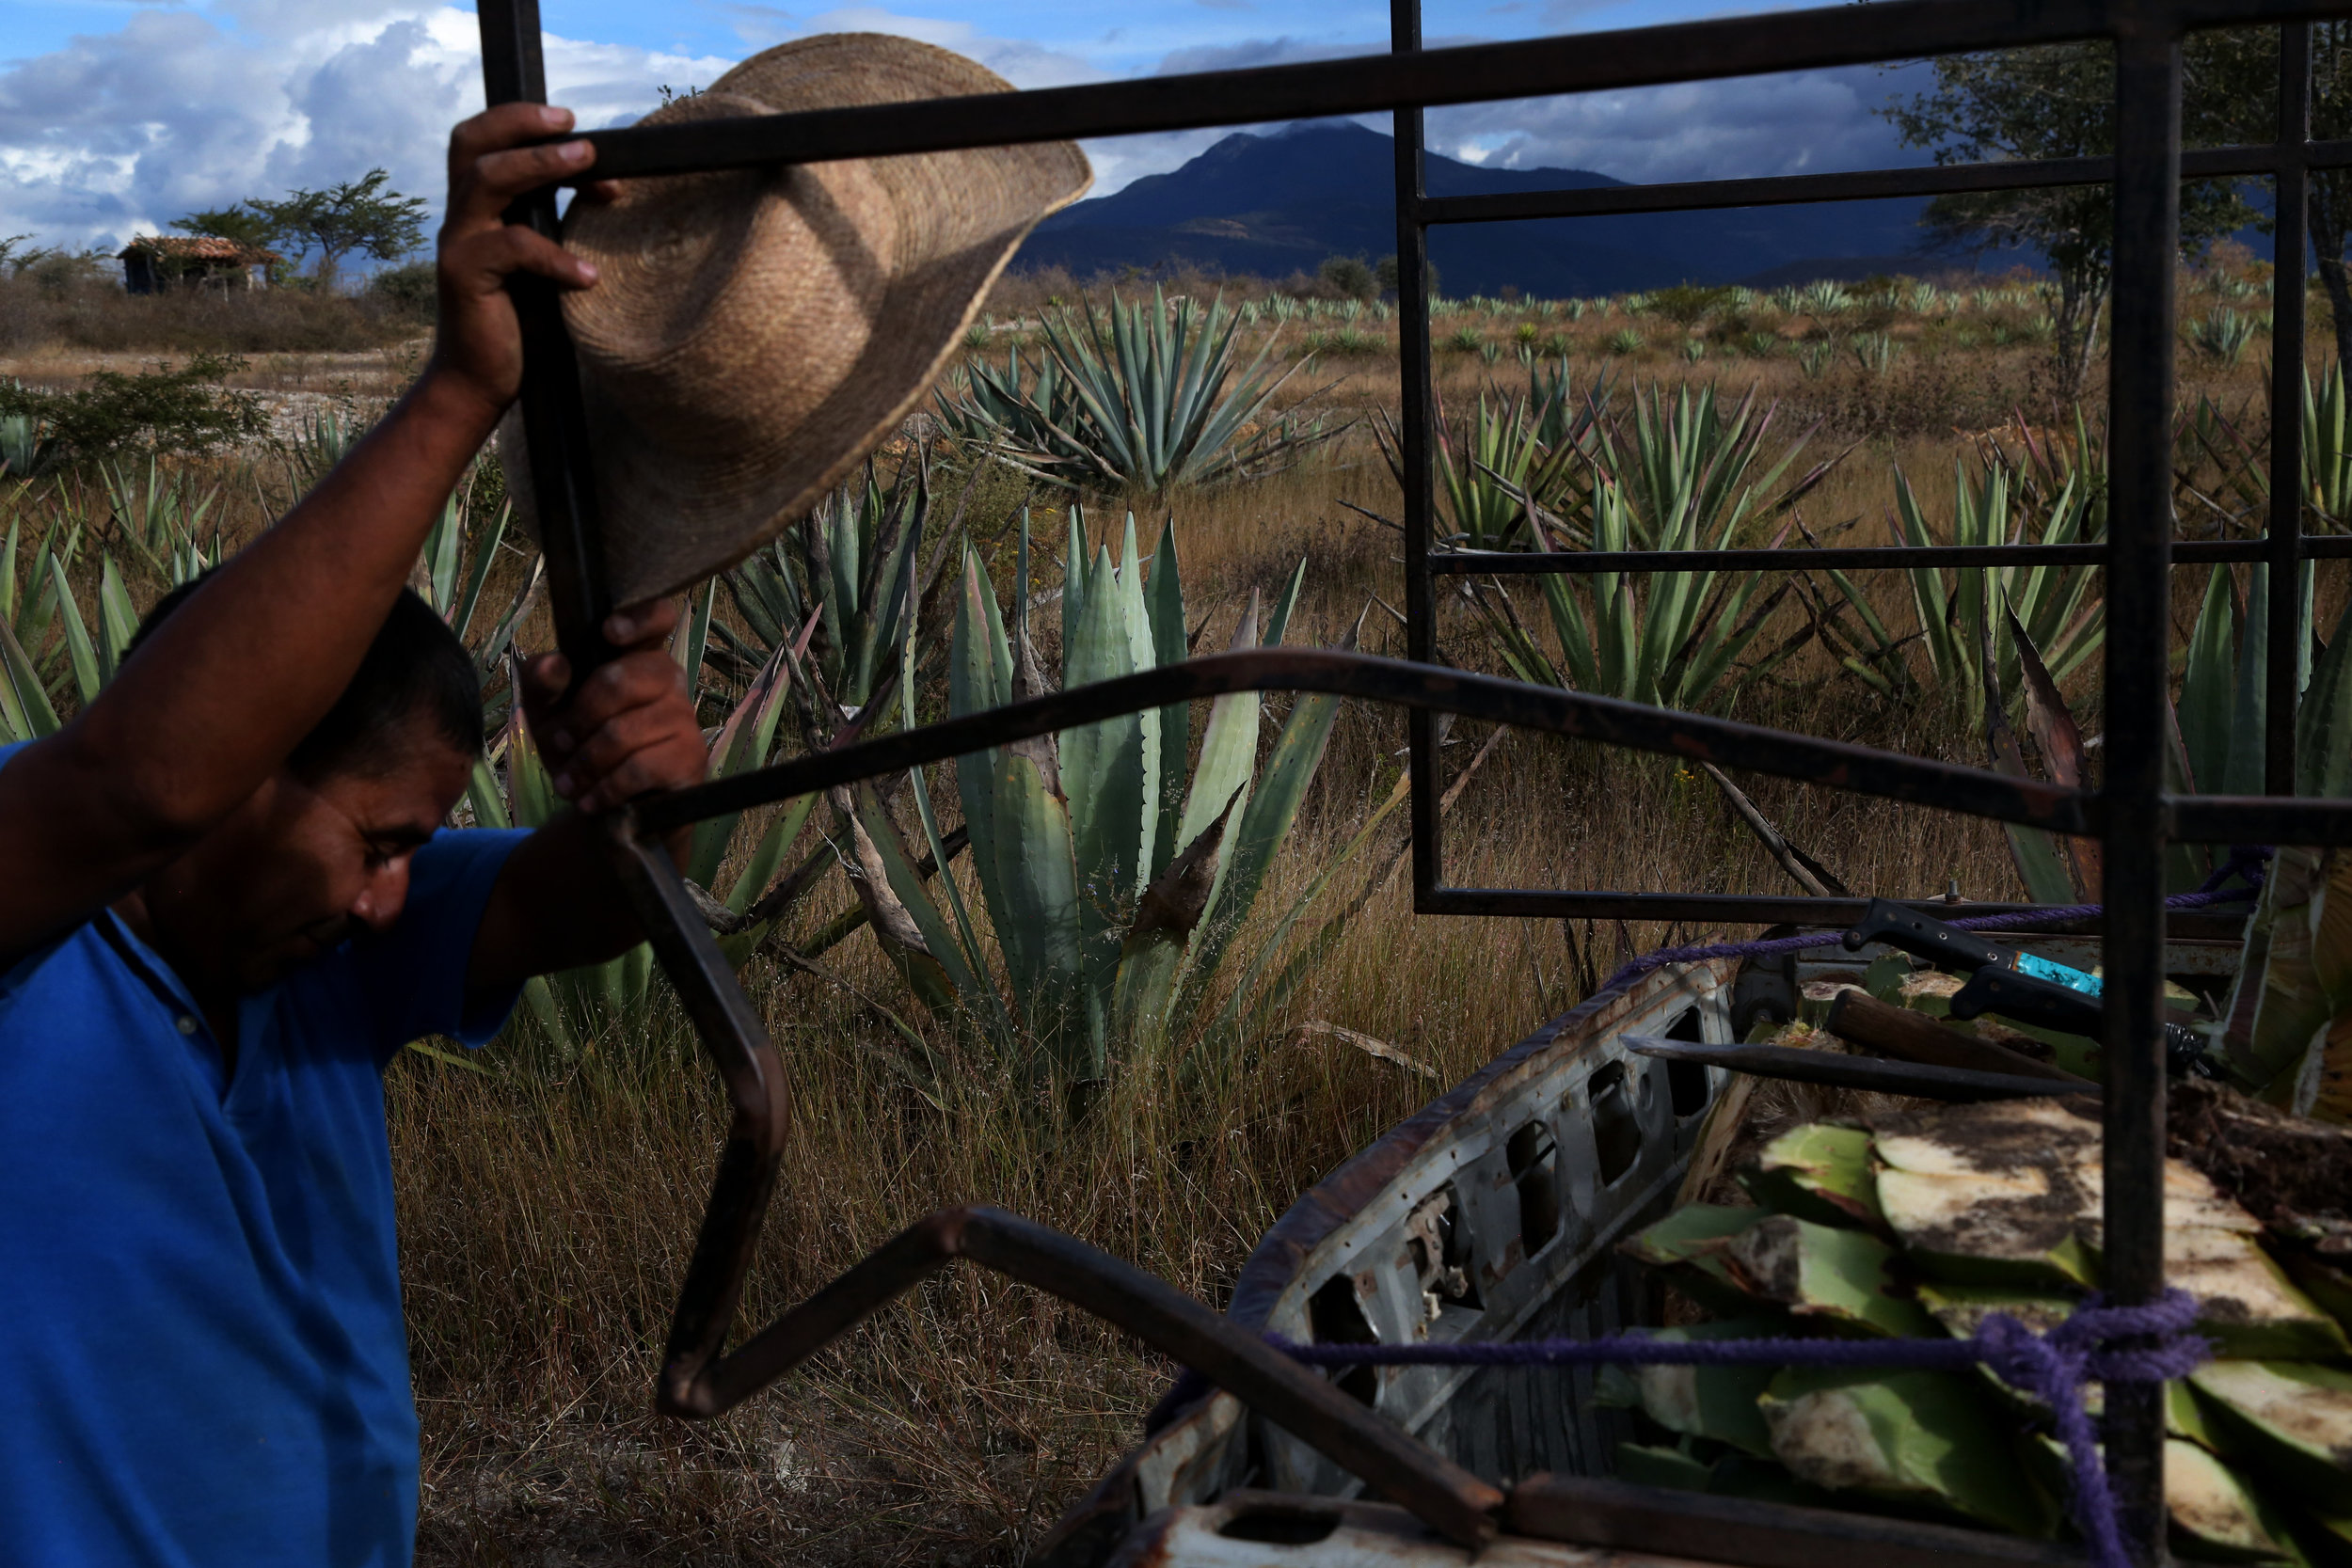 Pedro Reyes wipes sweat from his brow after a day of harvesting agave near  Mihuatlan, Oaxaca.